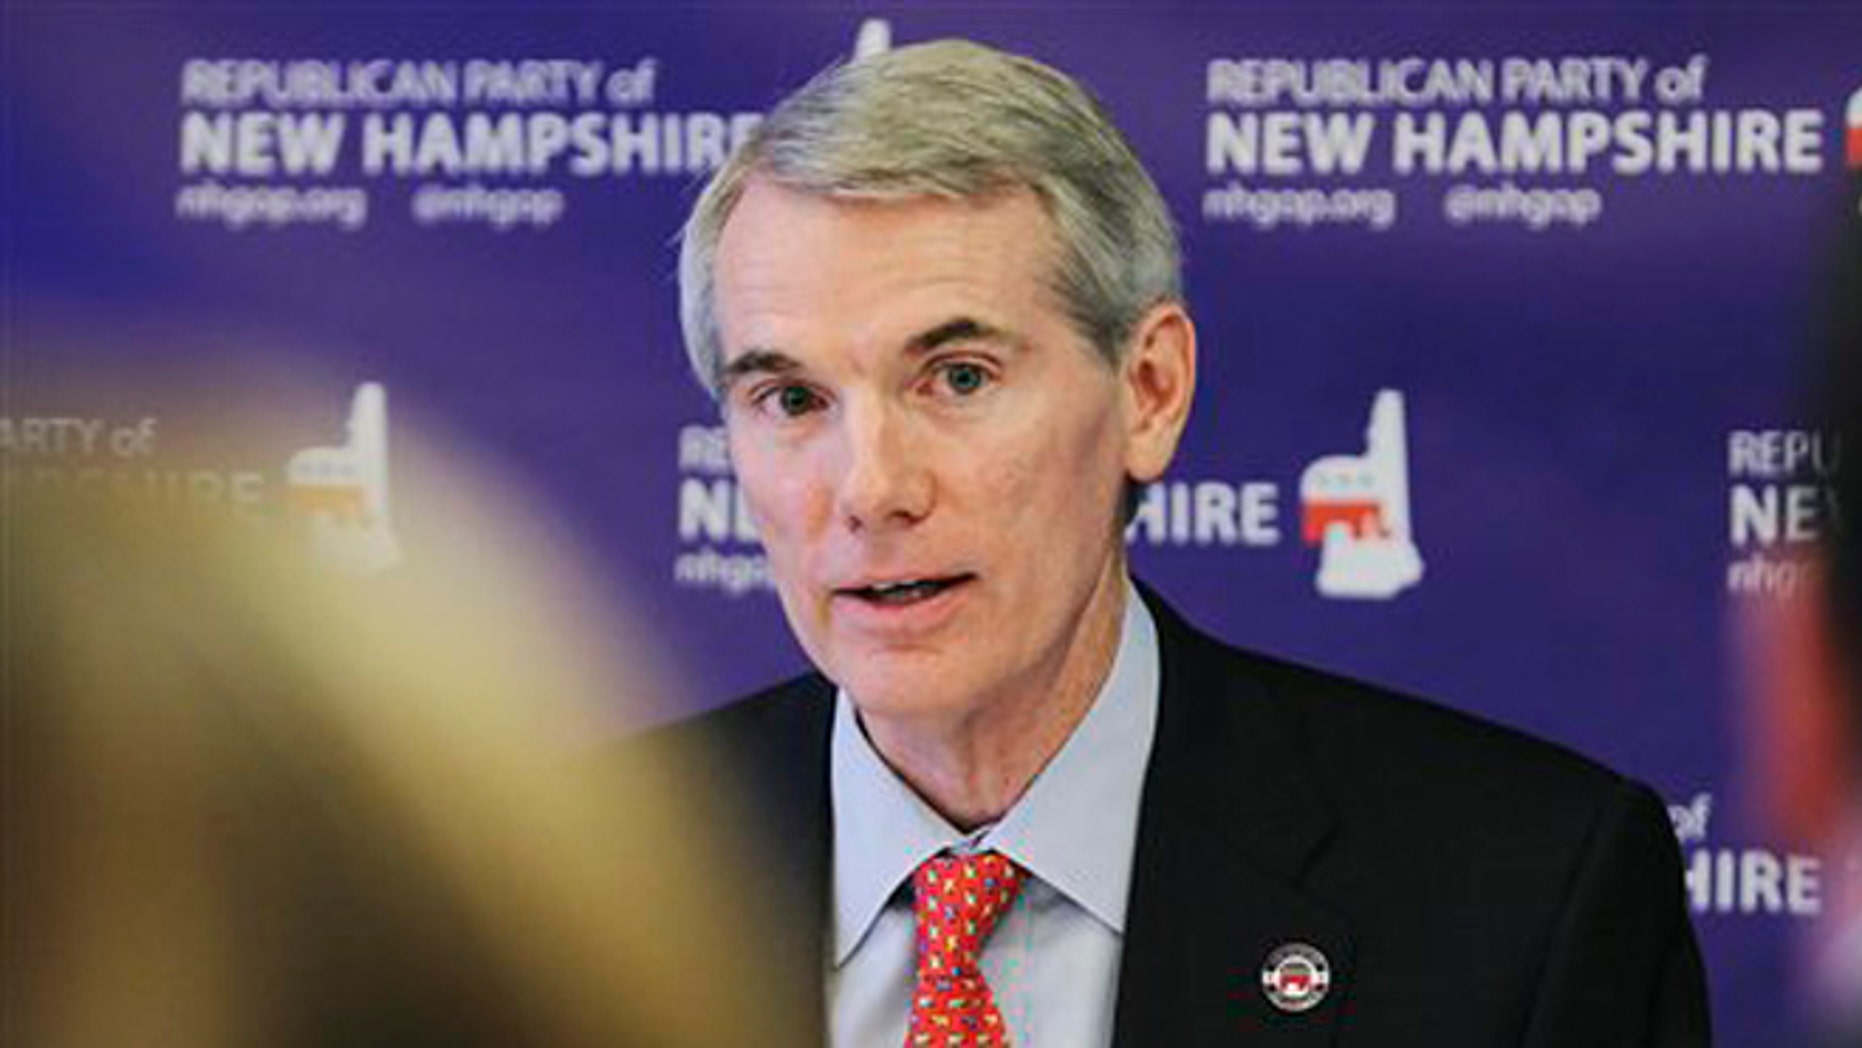 Saturday, July 7, 2012: Sen. Rob Portman, R-Ohio, speaks at a media roundtable hosted by the New Hampshire Republican Party, in Concord, N.H.